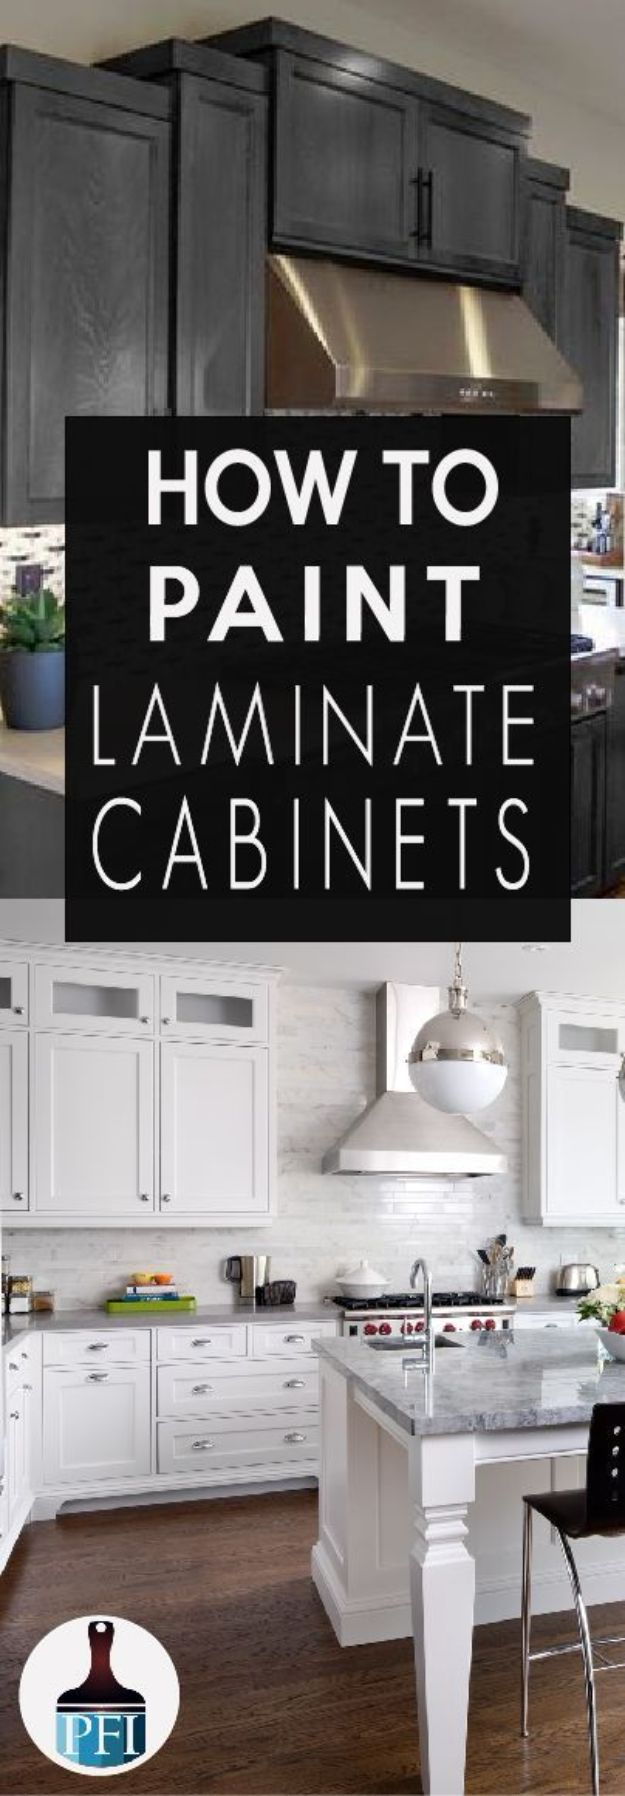 repainting kitchen cabinets diy 34 painting hacks and secrets from the pros 4720